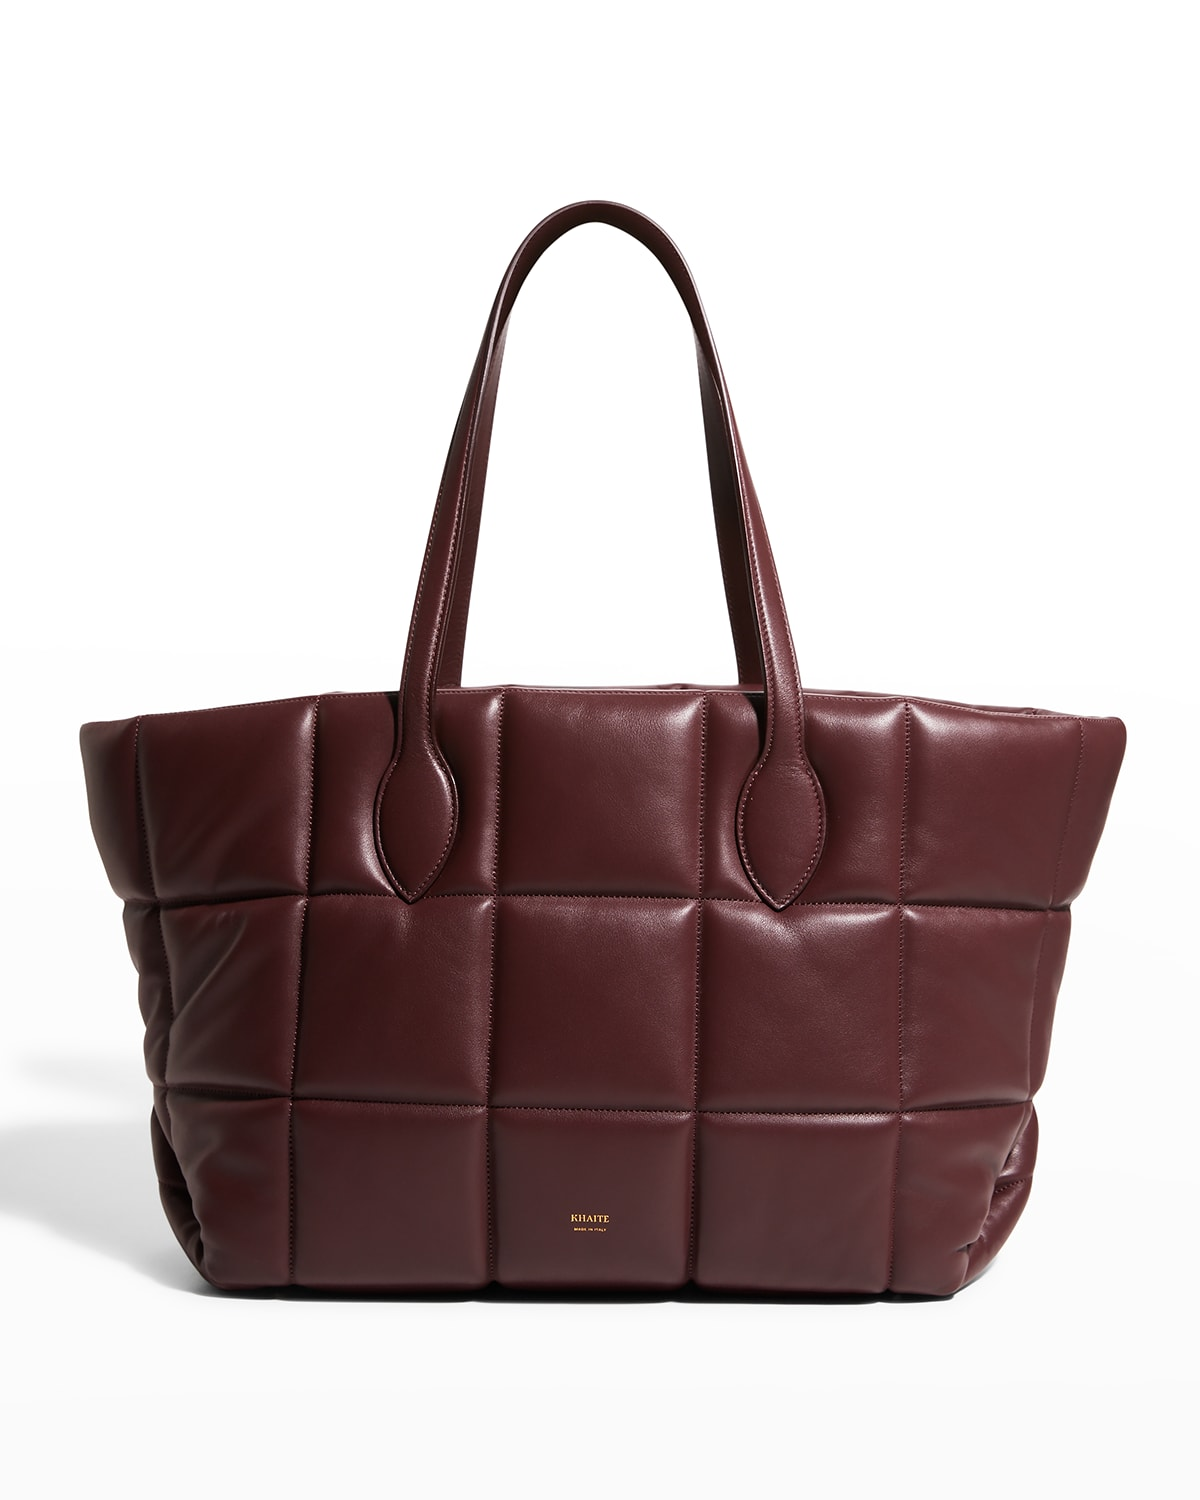 Florence Quilted Leather Tote Bag